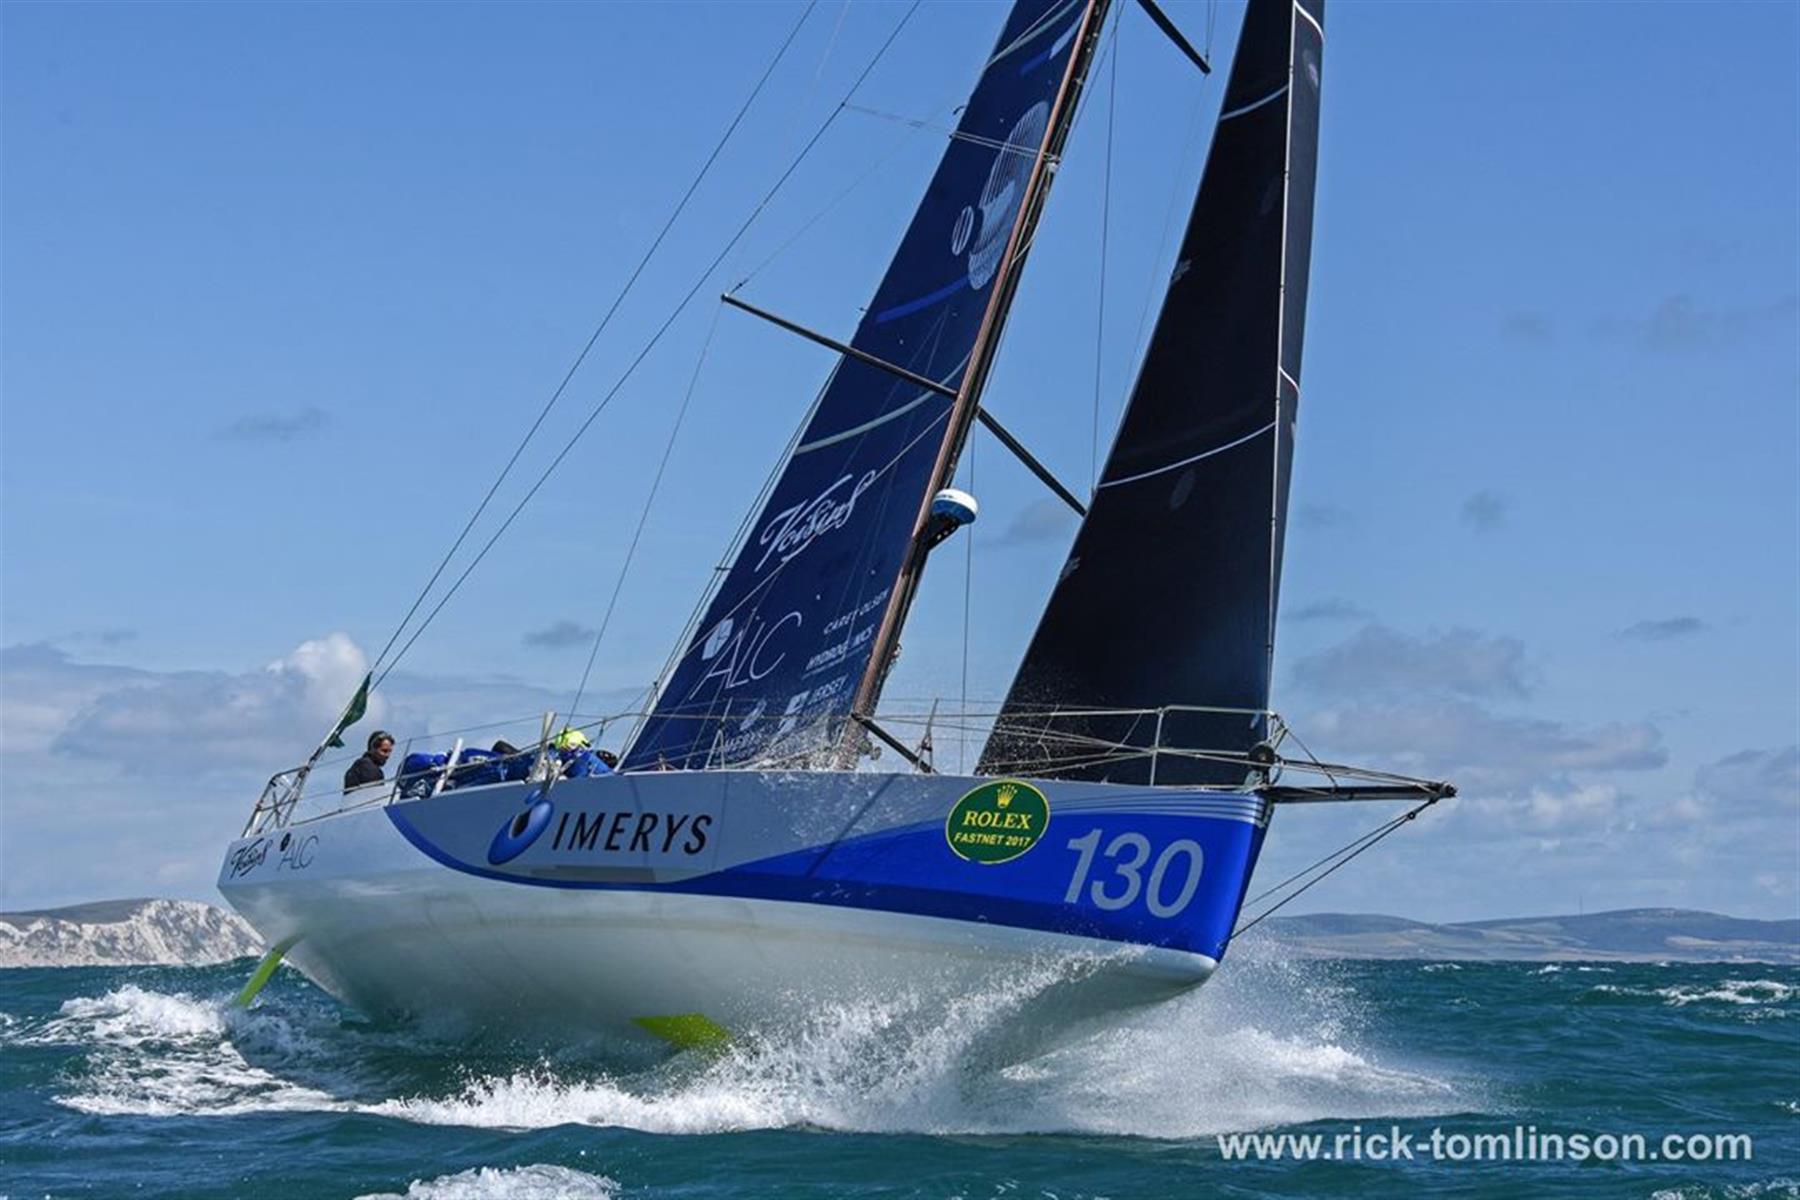 2nd in the Rolex Fastnet Race